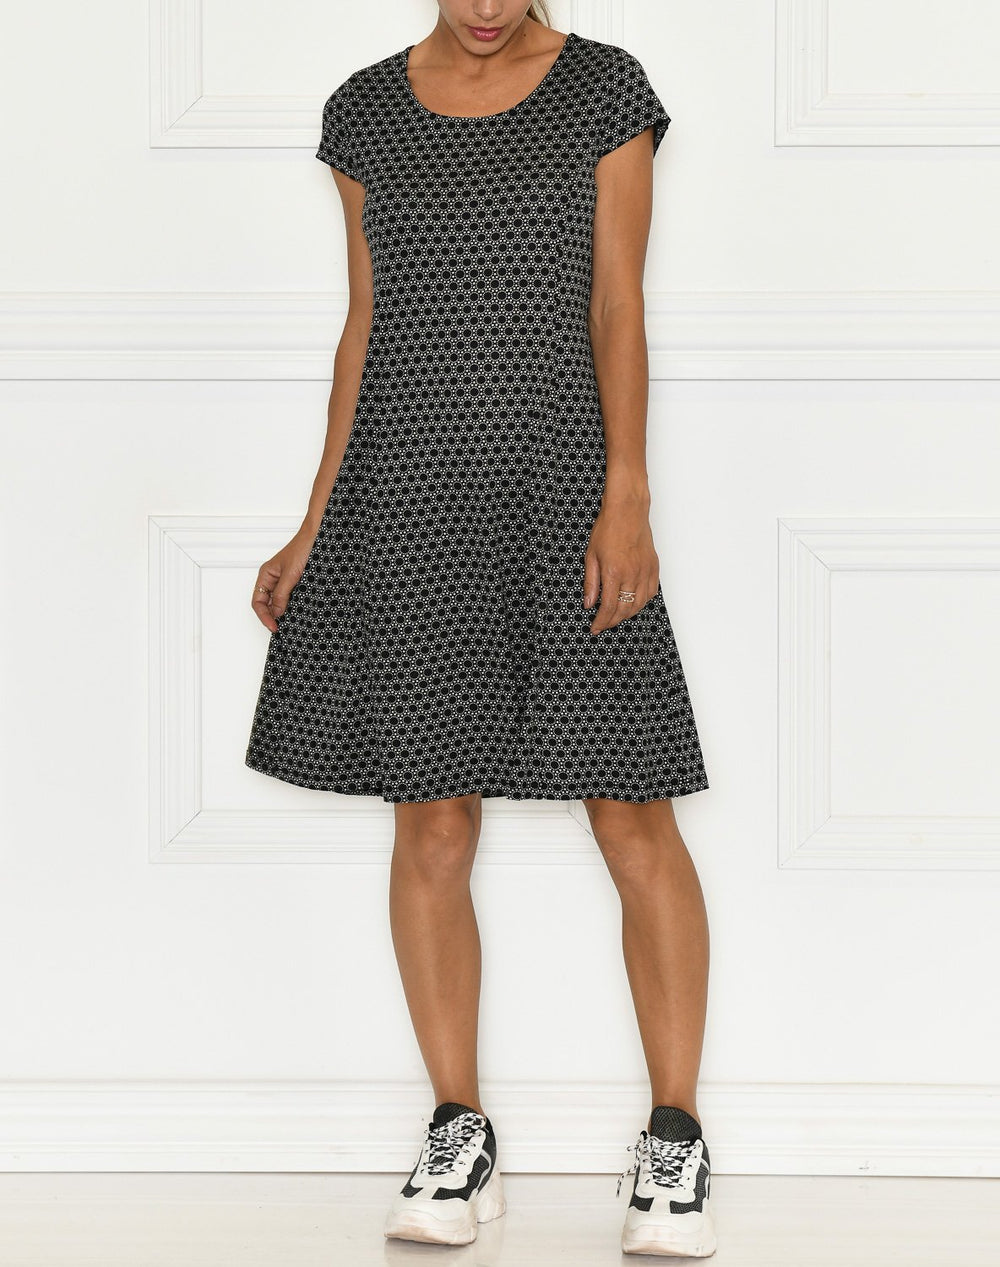 Ofelia Fiola dress print 1 black - Online-Mode